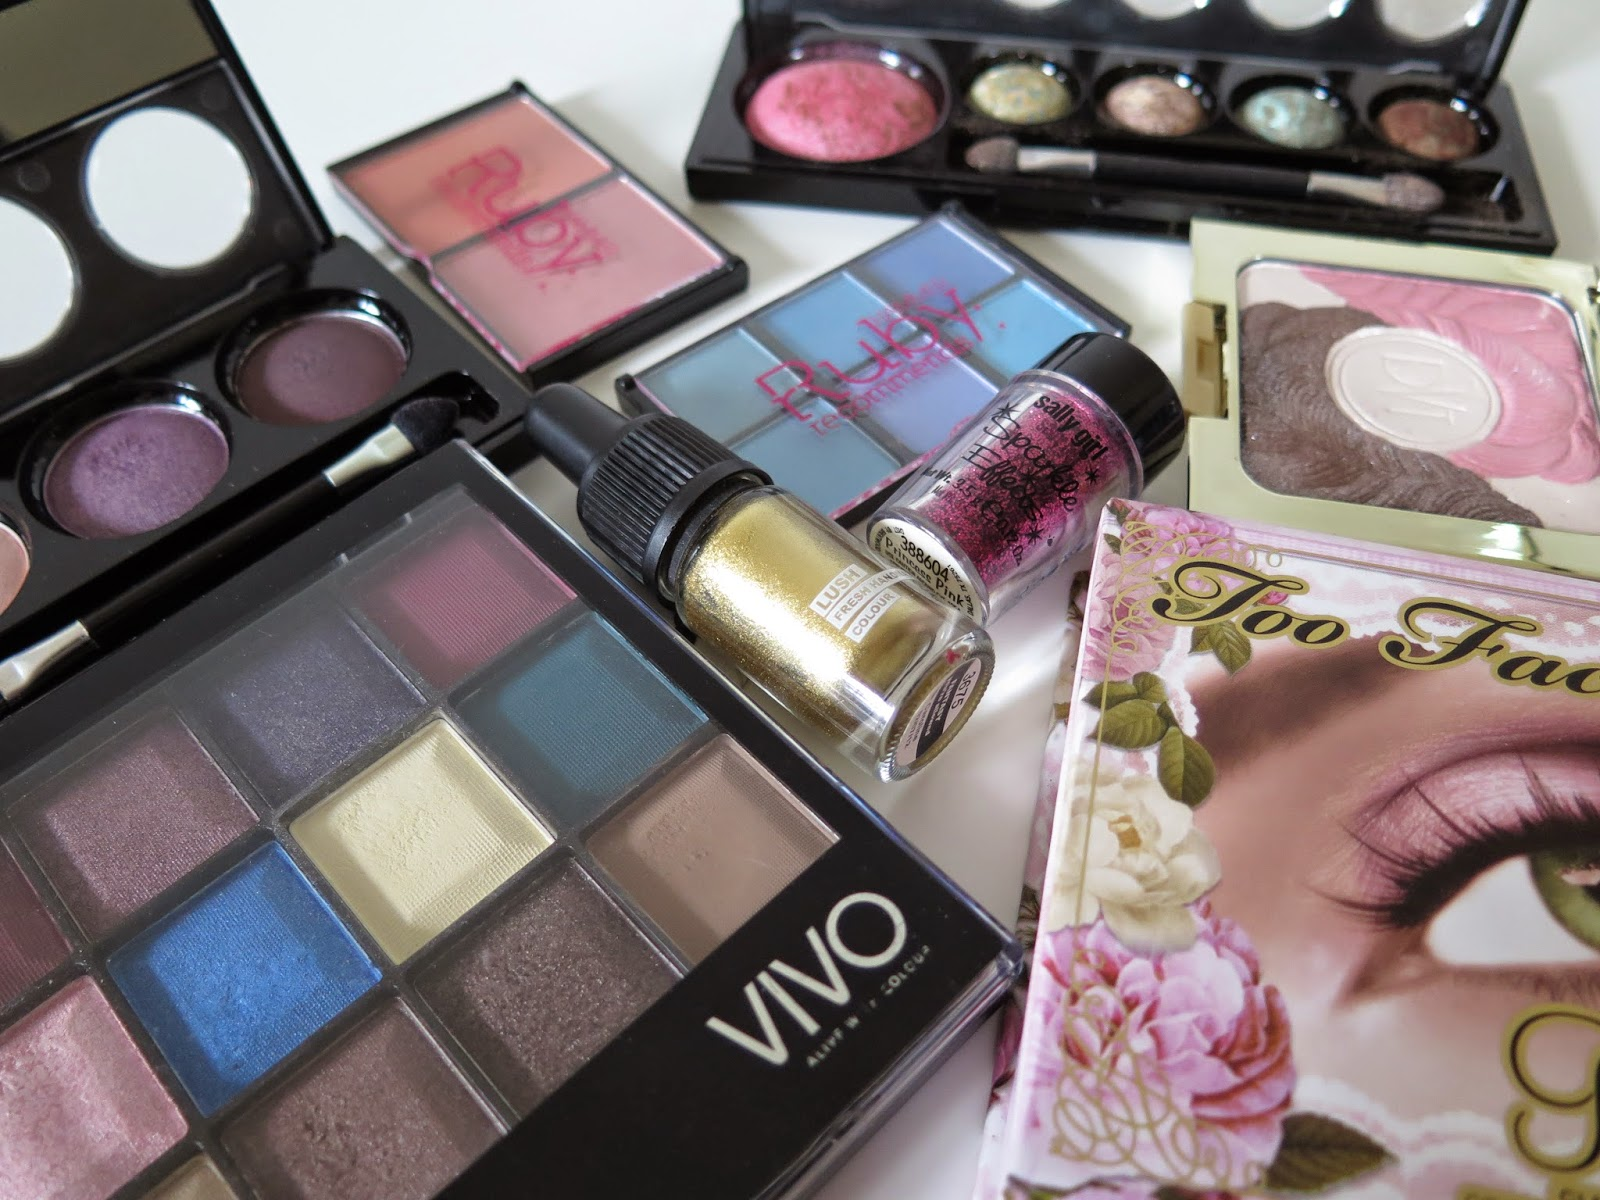 make-up, beauty products